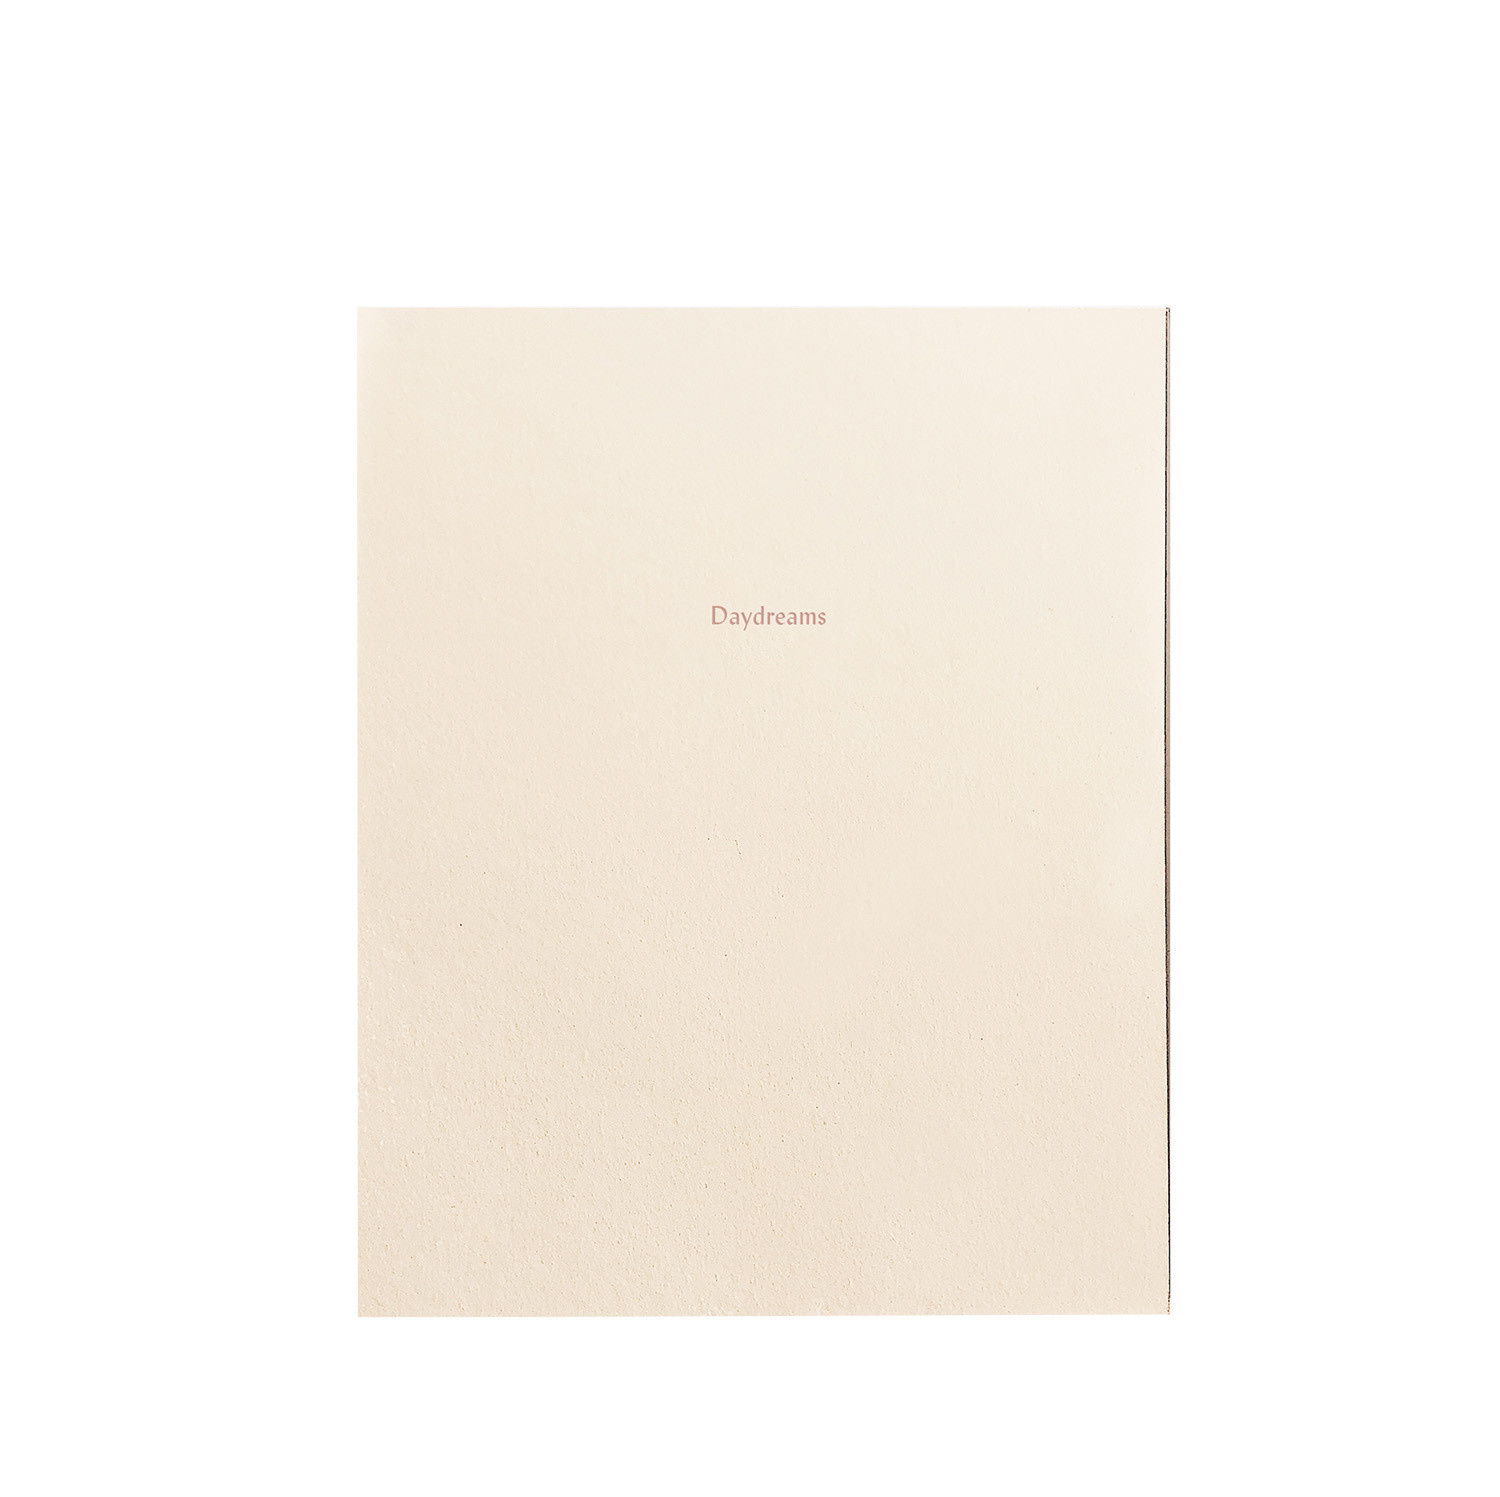 WILDE HOUSE PAPER Daydreams Notepad